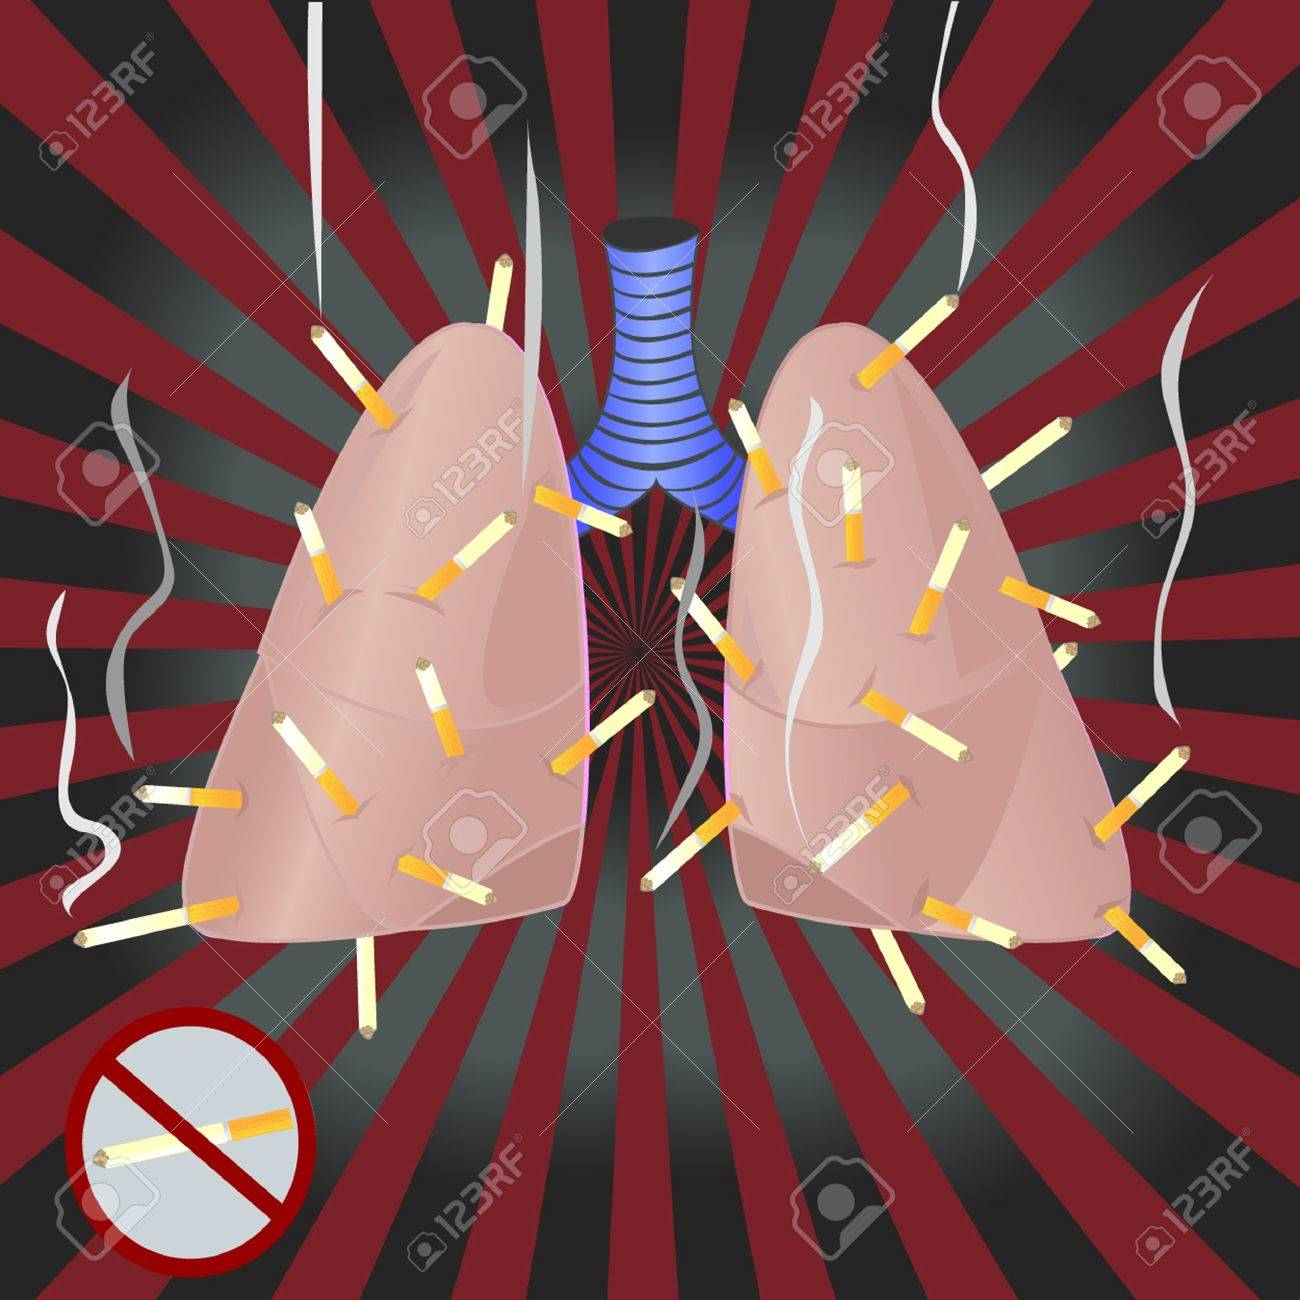 Lungs are smoking a lot of cigarettes Stock Vector - 11218810